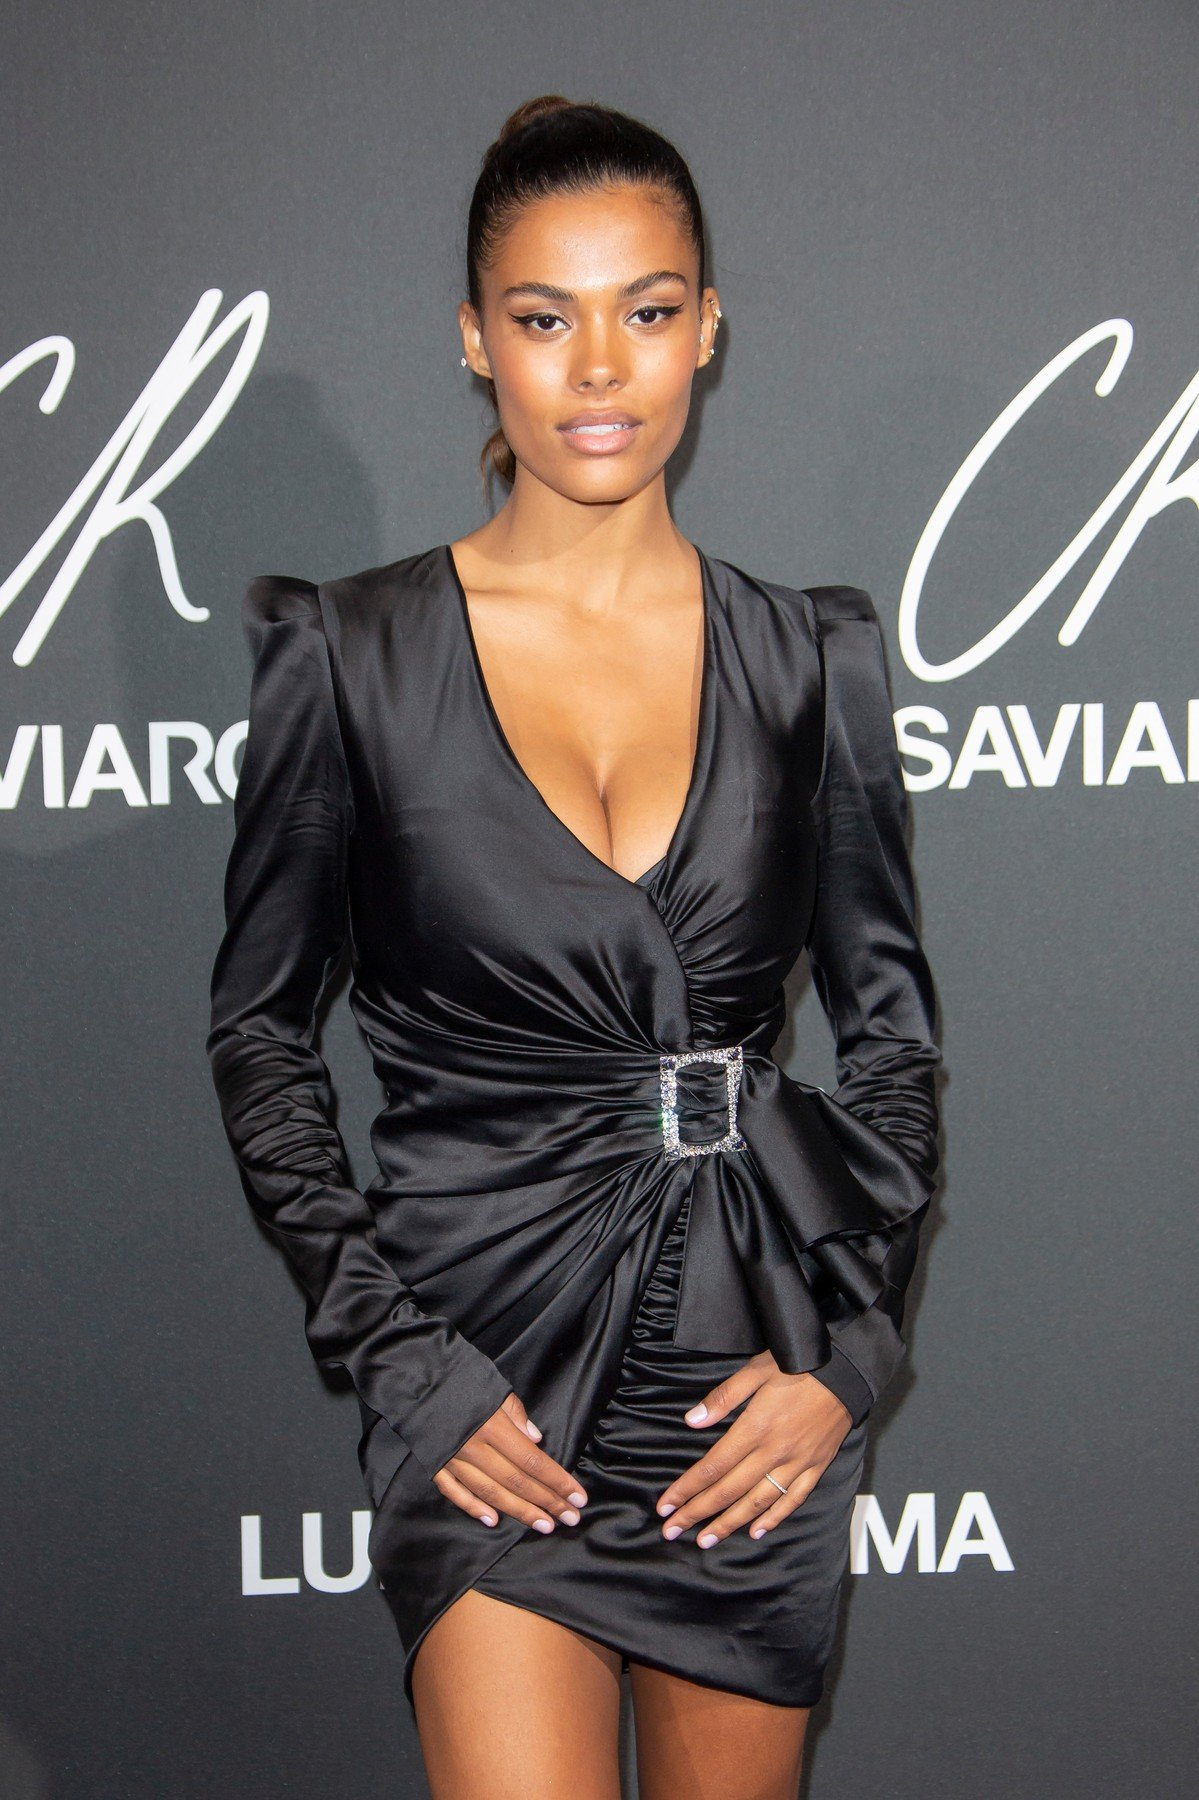 Tina Kunakey attends the CR Fashion Book x Luisasaviaroma : Photocall as part of the Paris Fashion Week Womenswear Spring/Summer 2019 on October 1, 2018 in Paris, France., Image: 389396304, License: Rights-managed, Restrictions: , Model Release: no, Credit line: Profimedia, KCS Presse